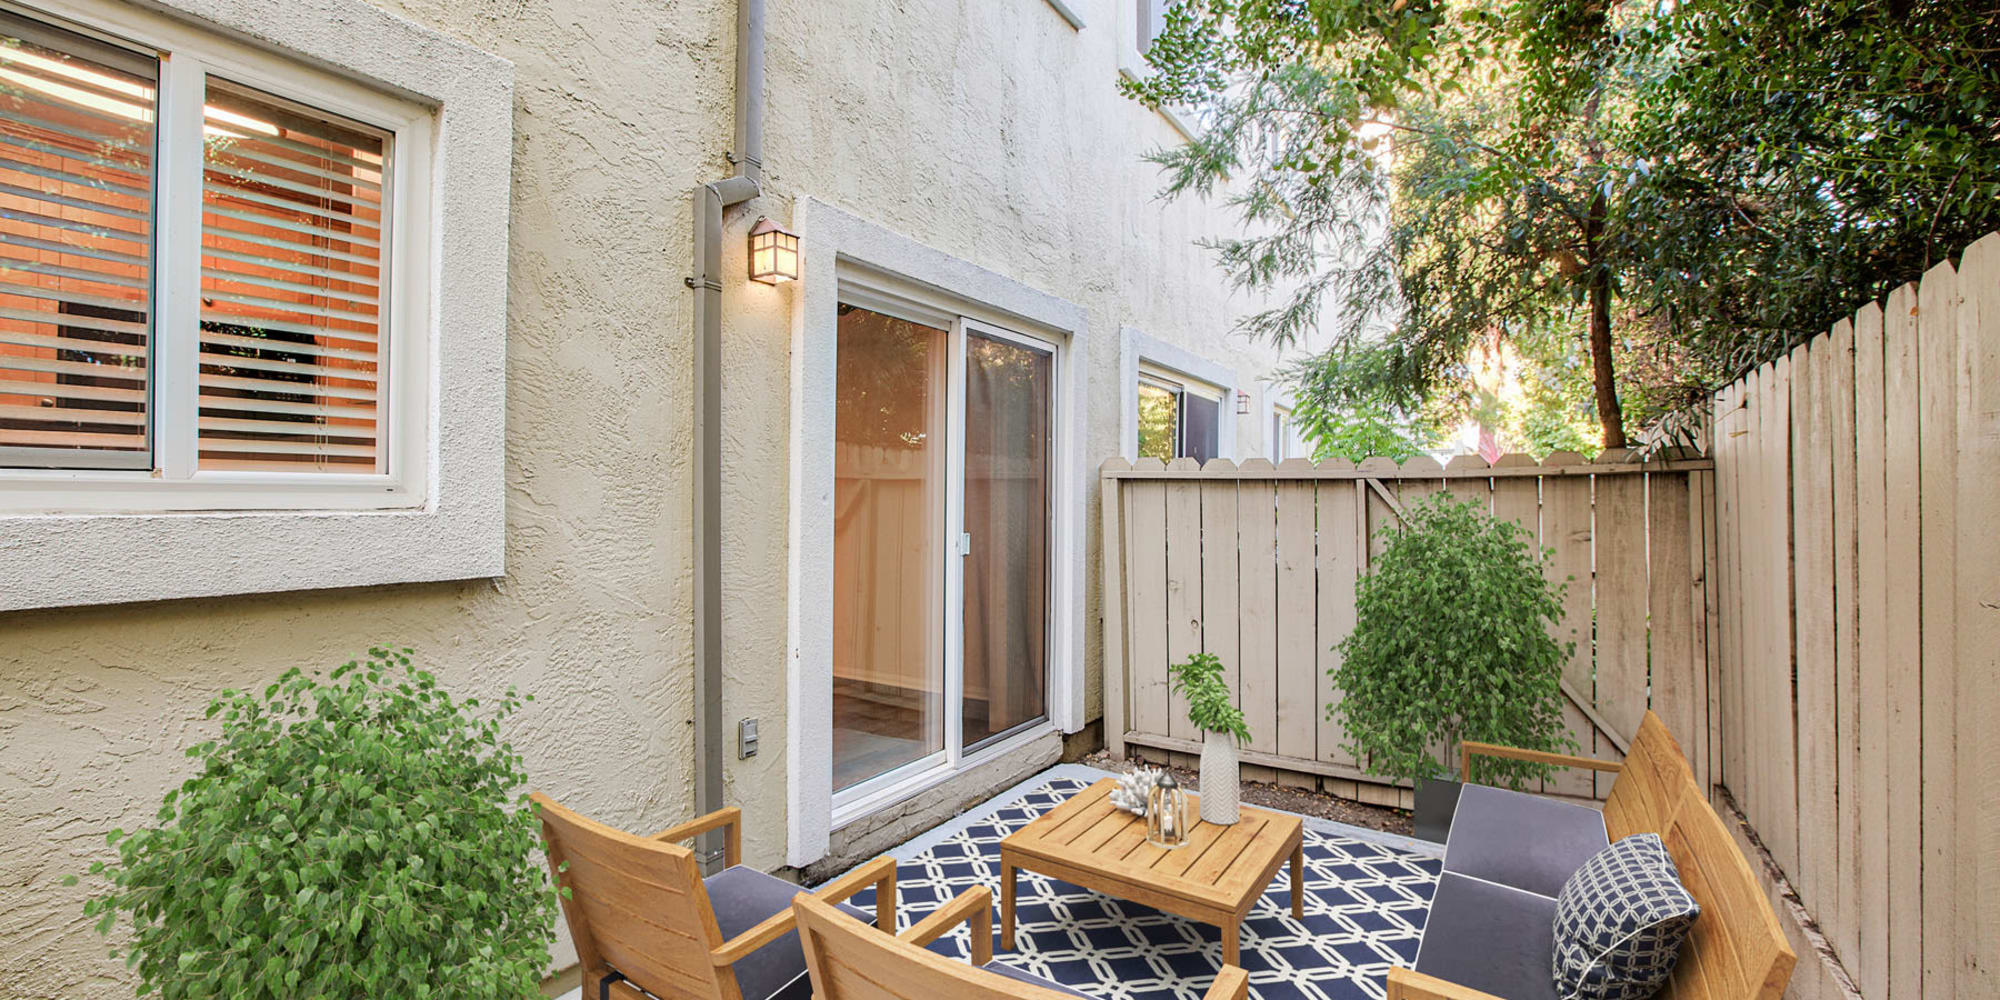 Model home's well-furnished private patio at Pleasanton Place Apartment Homes in Pleasanton, California